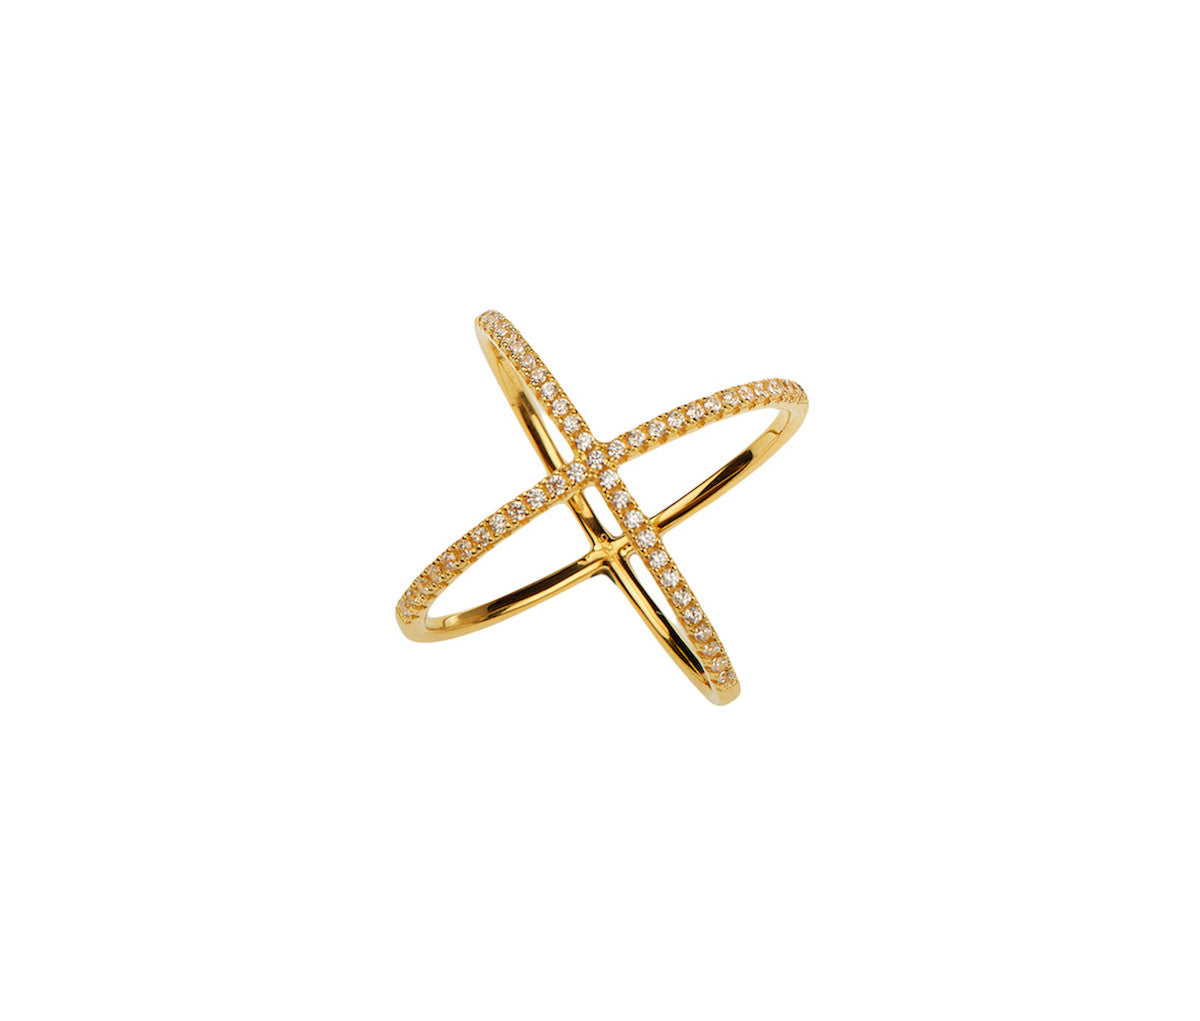 Silver in 1 micron Yellow Gold Crossed-Orbits Ring